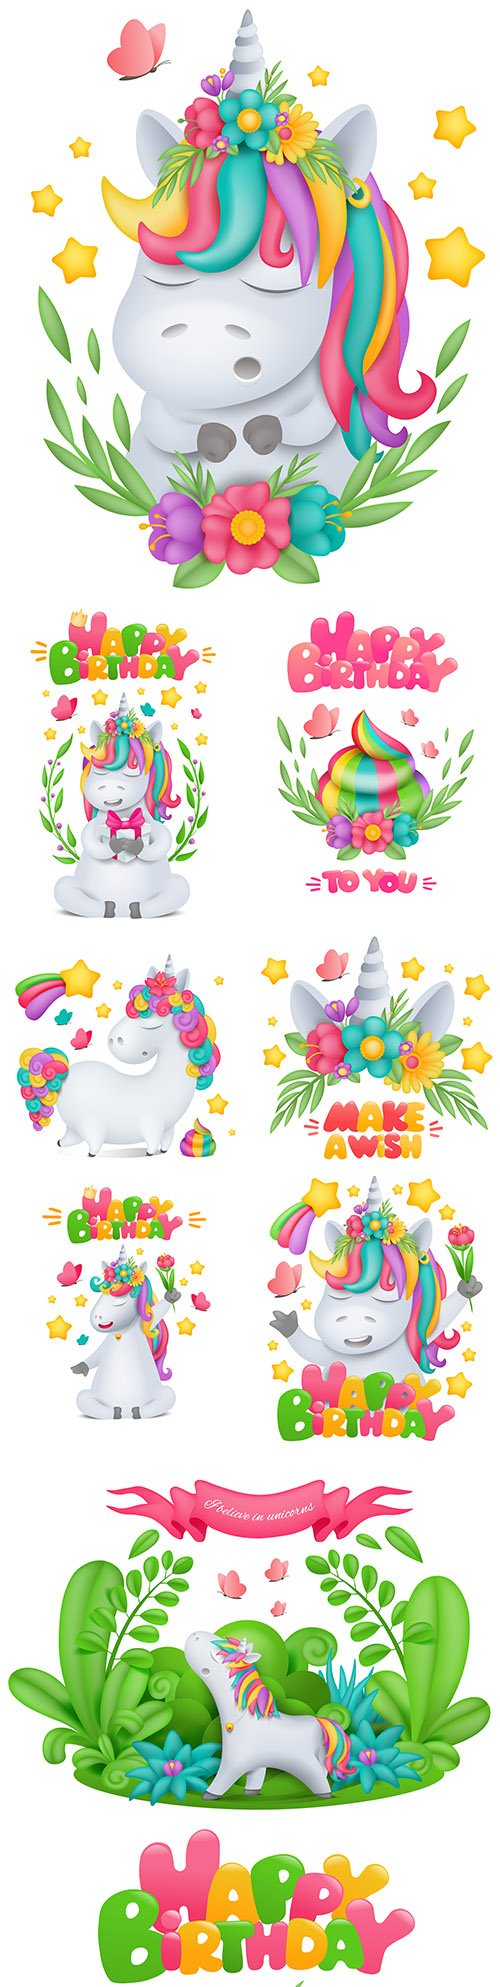 Unicorn cartoon birthday greeting card design